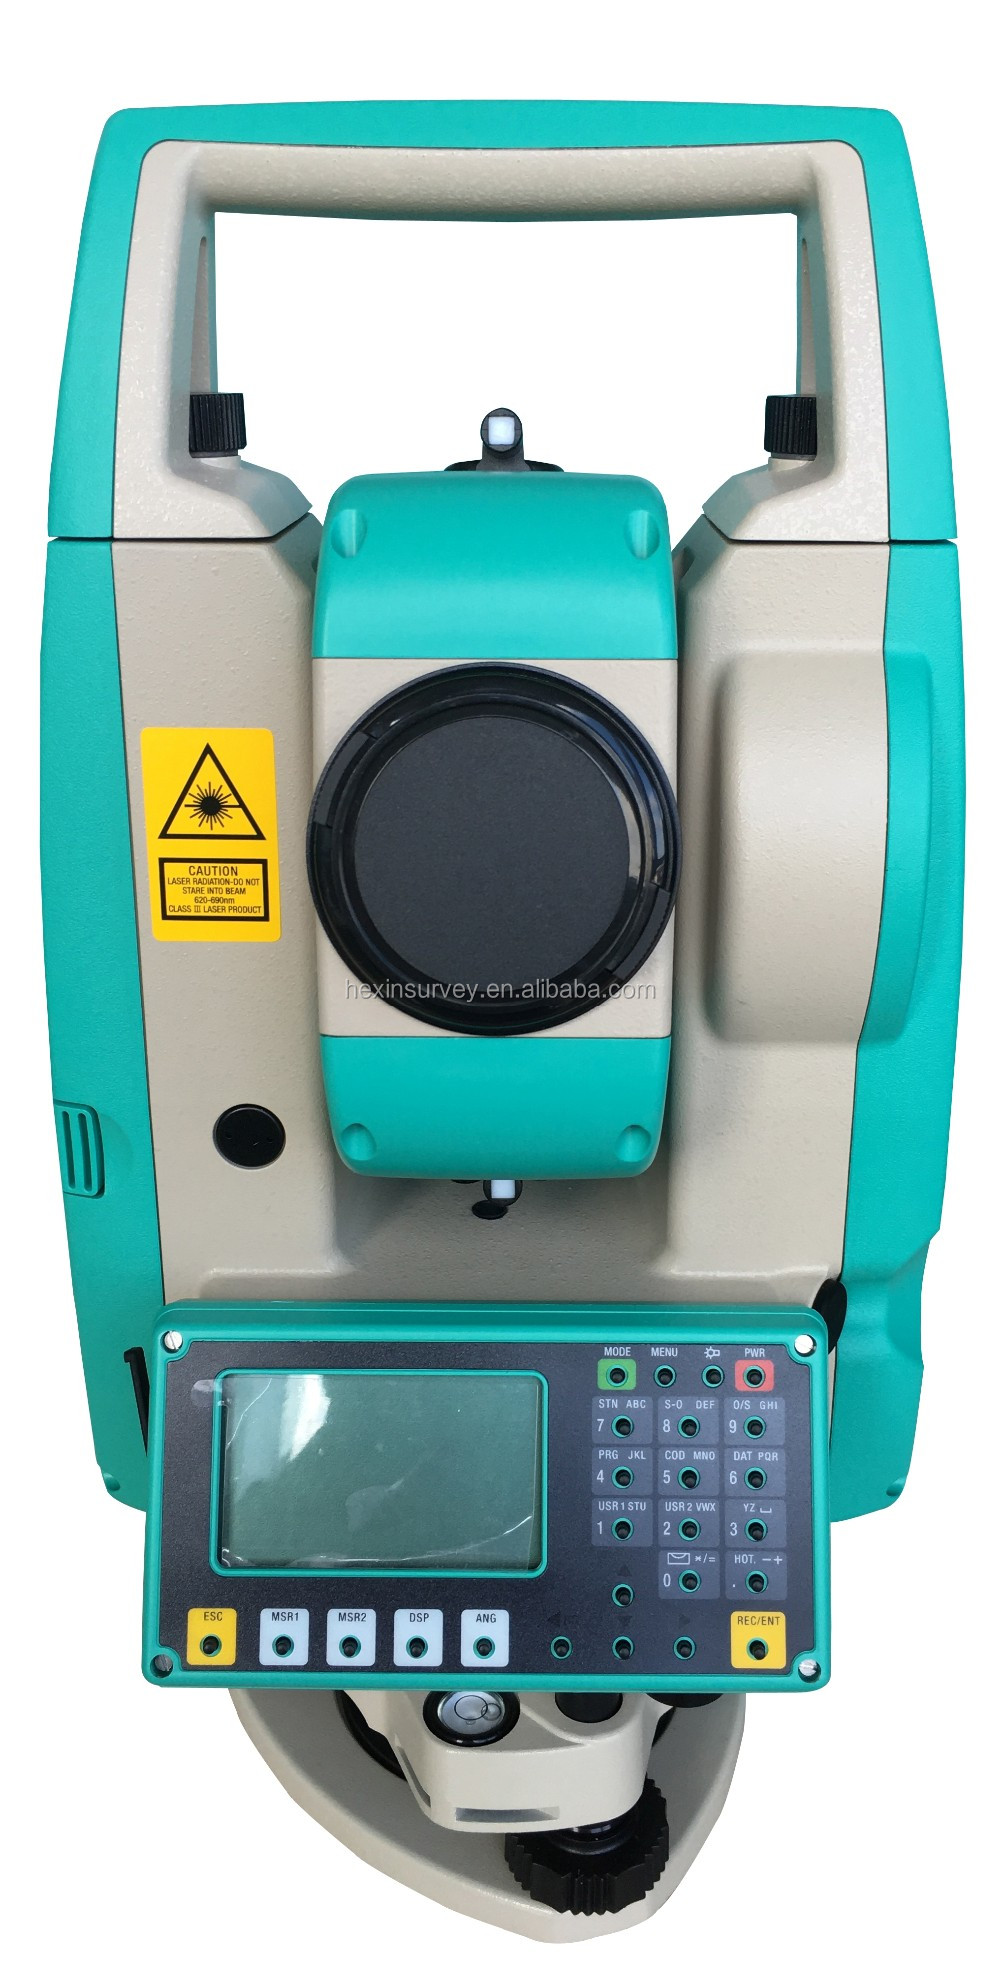 2017 New Ruide R2 Total Station 400m Reflectorless Original English Version View Ruide Total Station Ruide Product Details From Shanghai Hexin